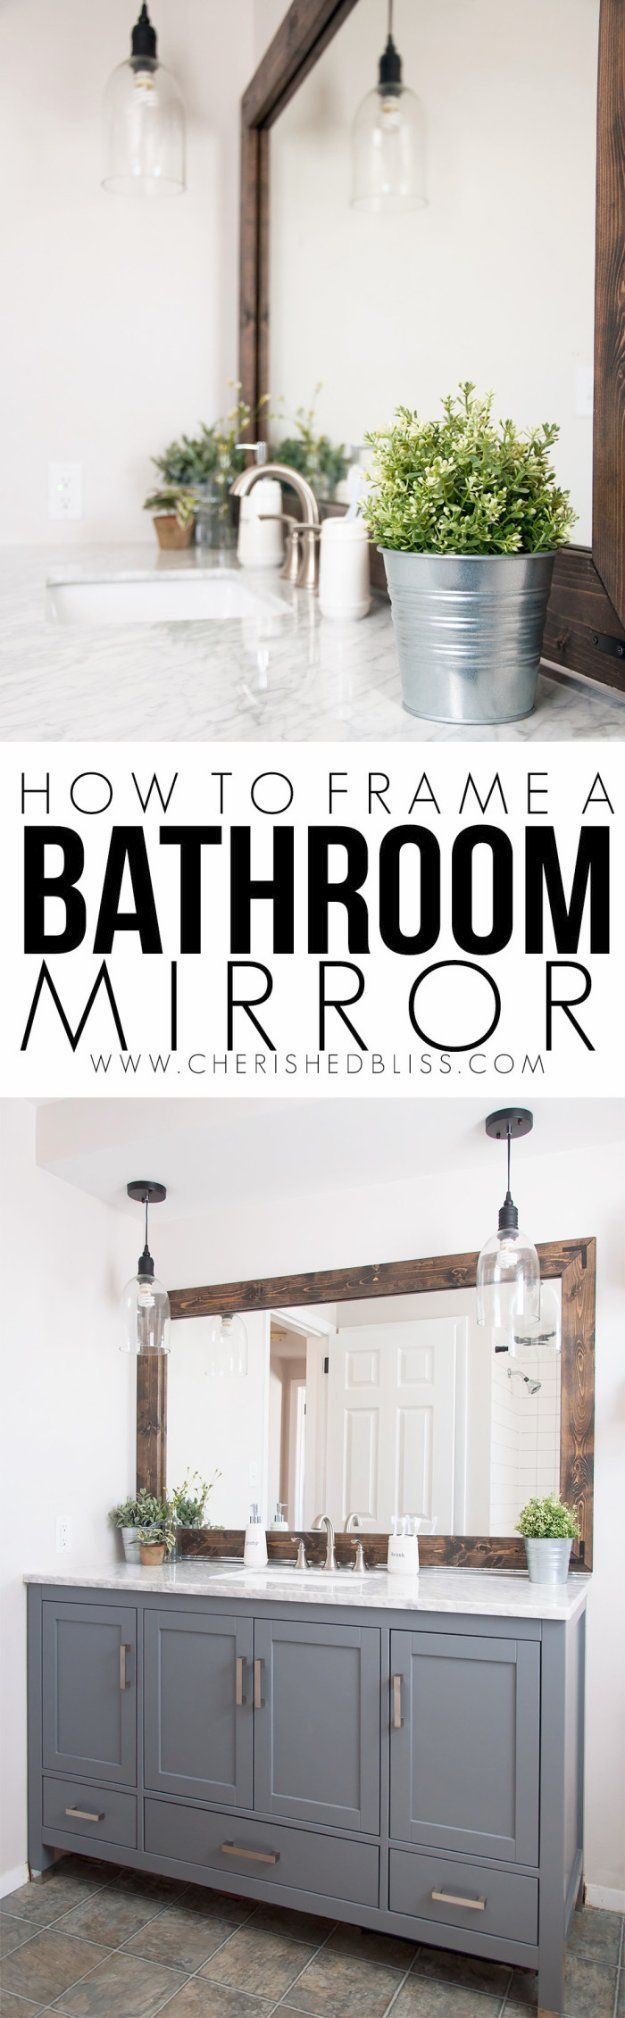 17 Best Ideas About Bathroom Wall Art On Pinterest Bathroom Wall